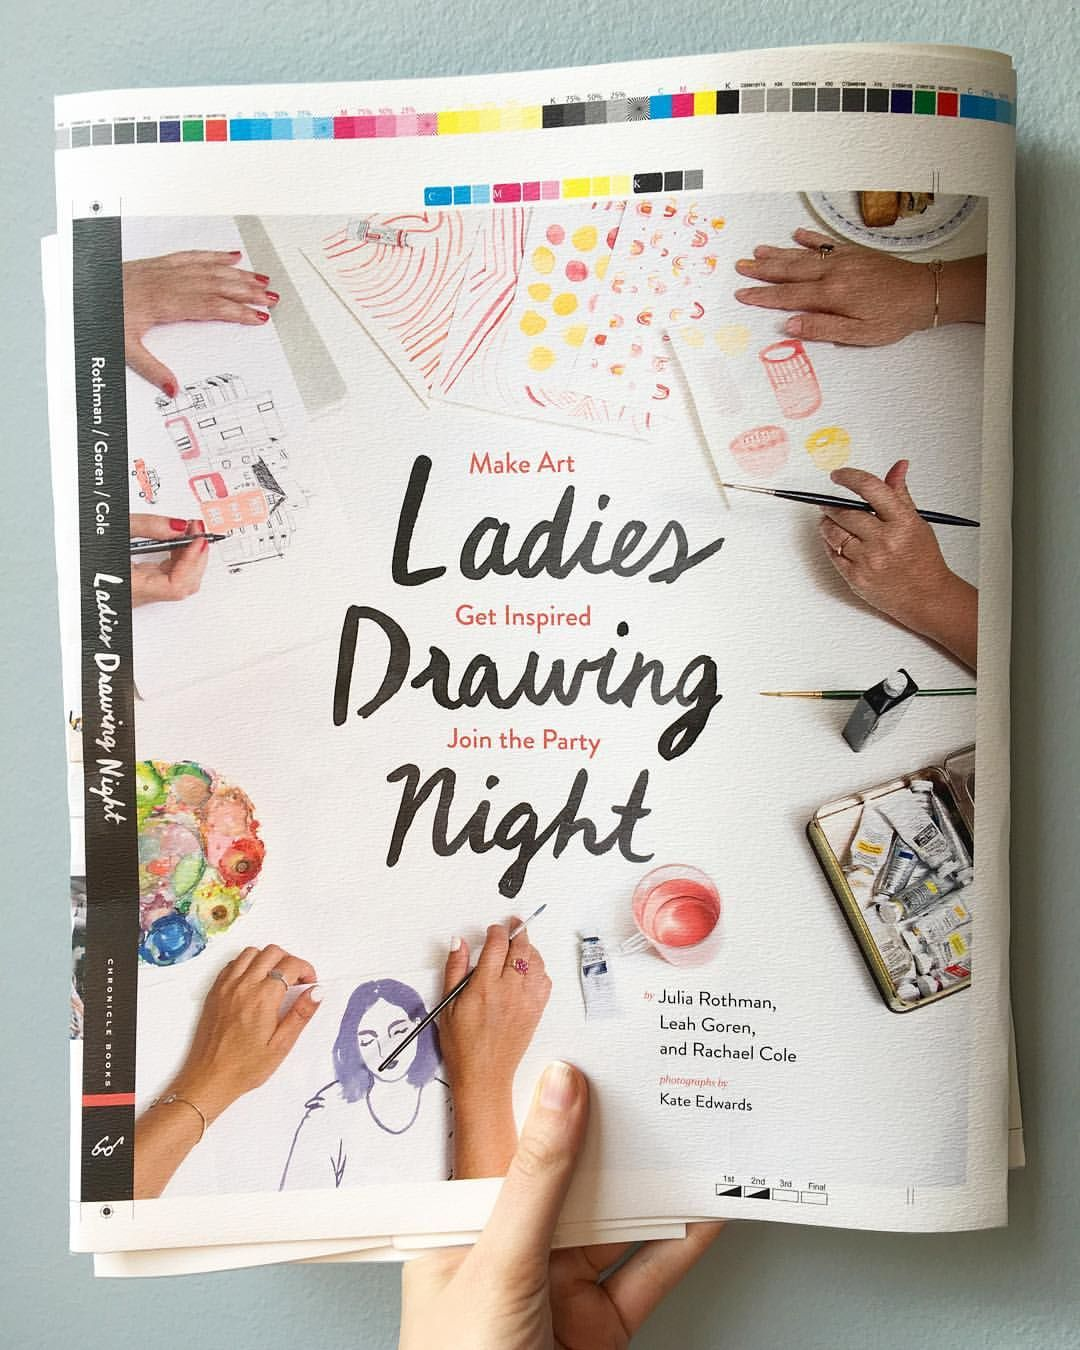 """juliarothman on Instagram: """"In honor of #internationalwomensday I wanted to share the cover proof for our Ladies Drawing Night Book coming out in the Fall. We are so excited to share projects, stories and advice from our own experiences and a huge handful of other incredible women. More to come in the next few months- can't wait #ladiesdrawingnight"""""""